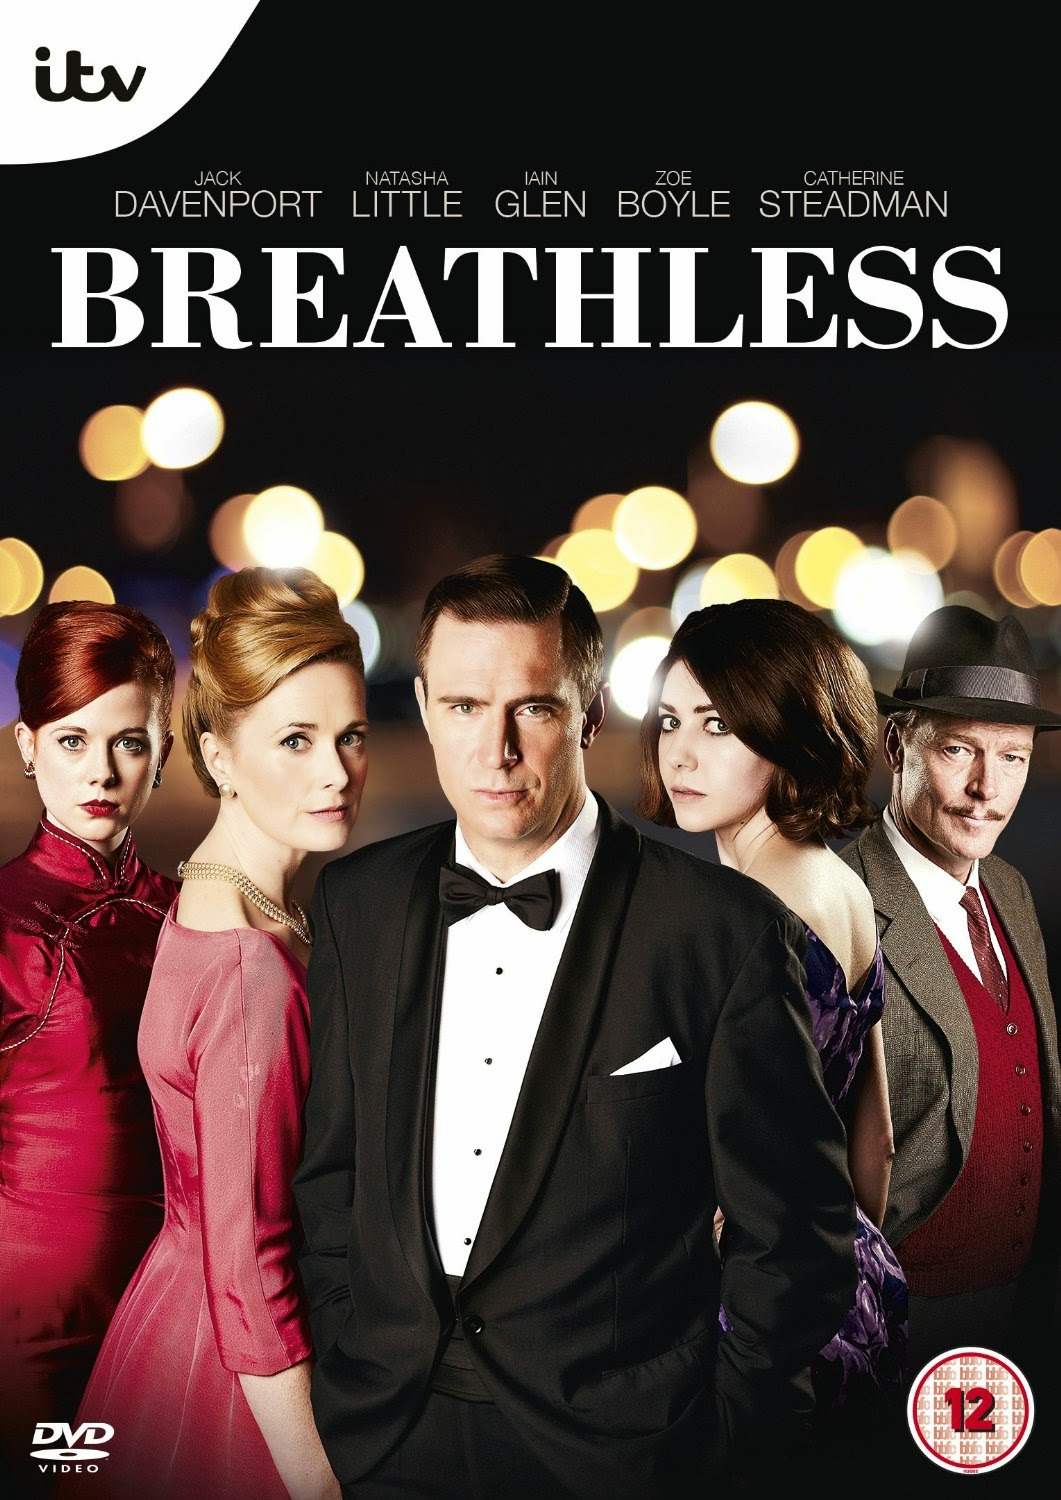 Capitulos de: Breathless